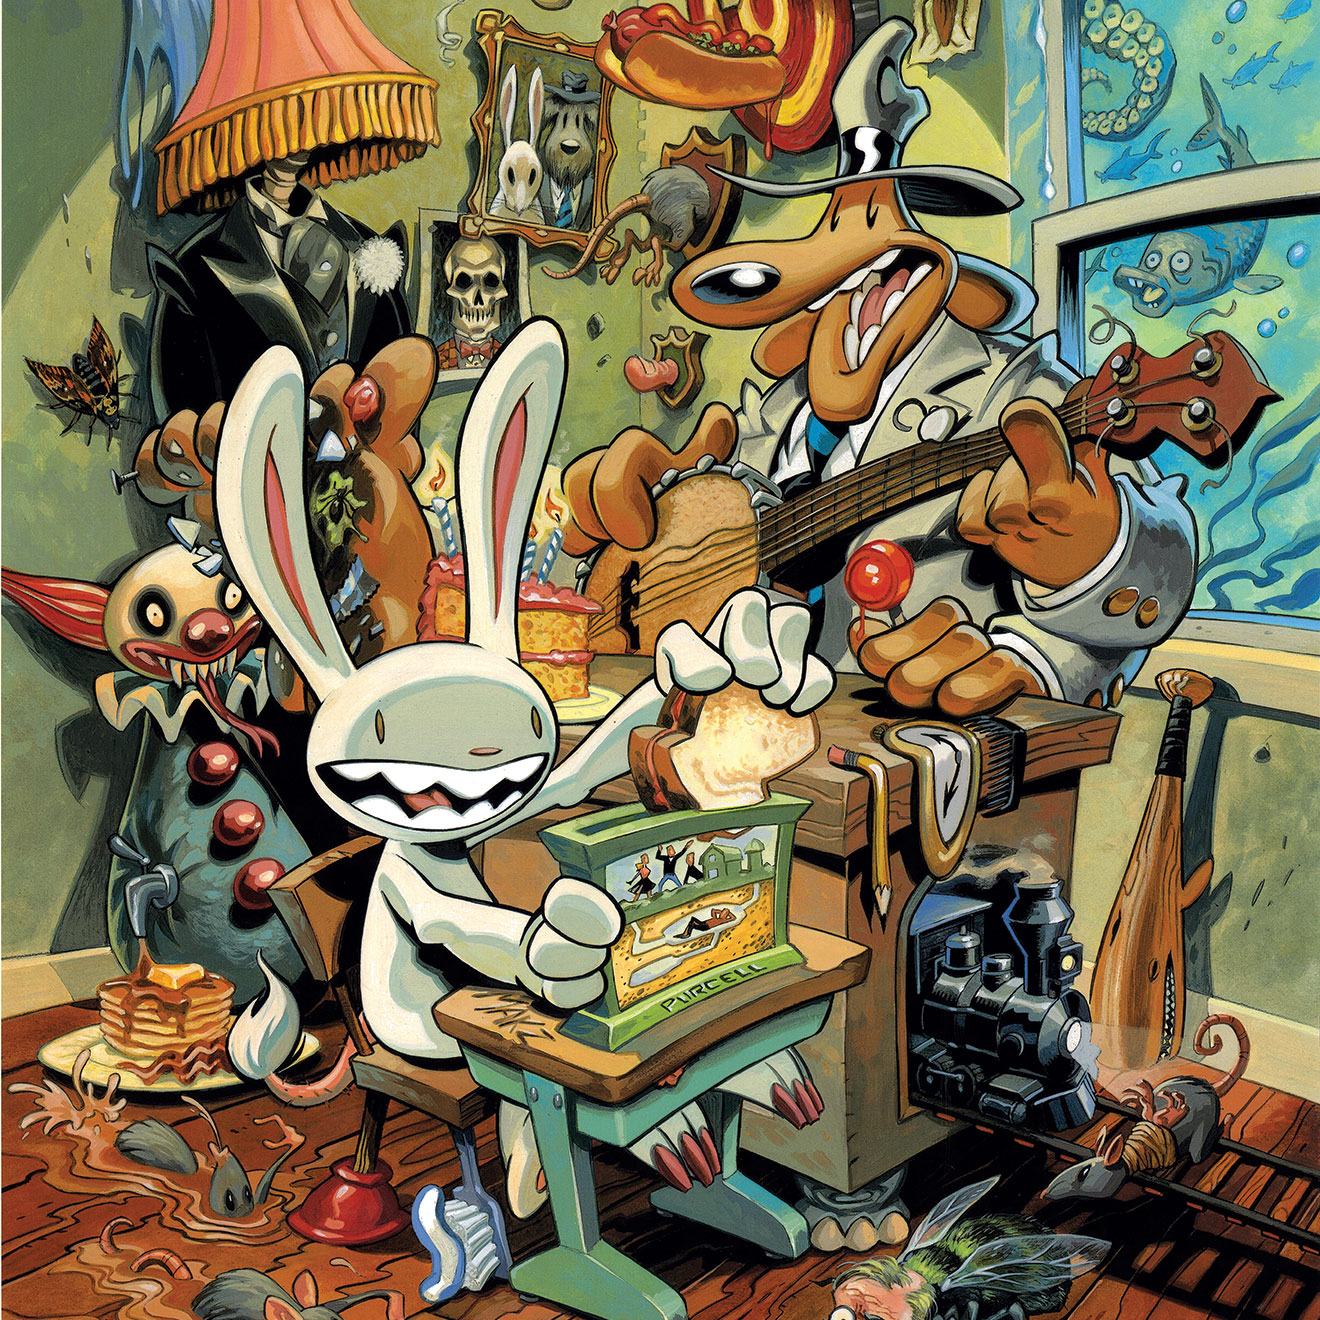 Sam & Max, Swift and Mirthful Justice: The Art of Steve Purcell - Nov 2, 2013 – Apr 19, 2014